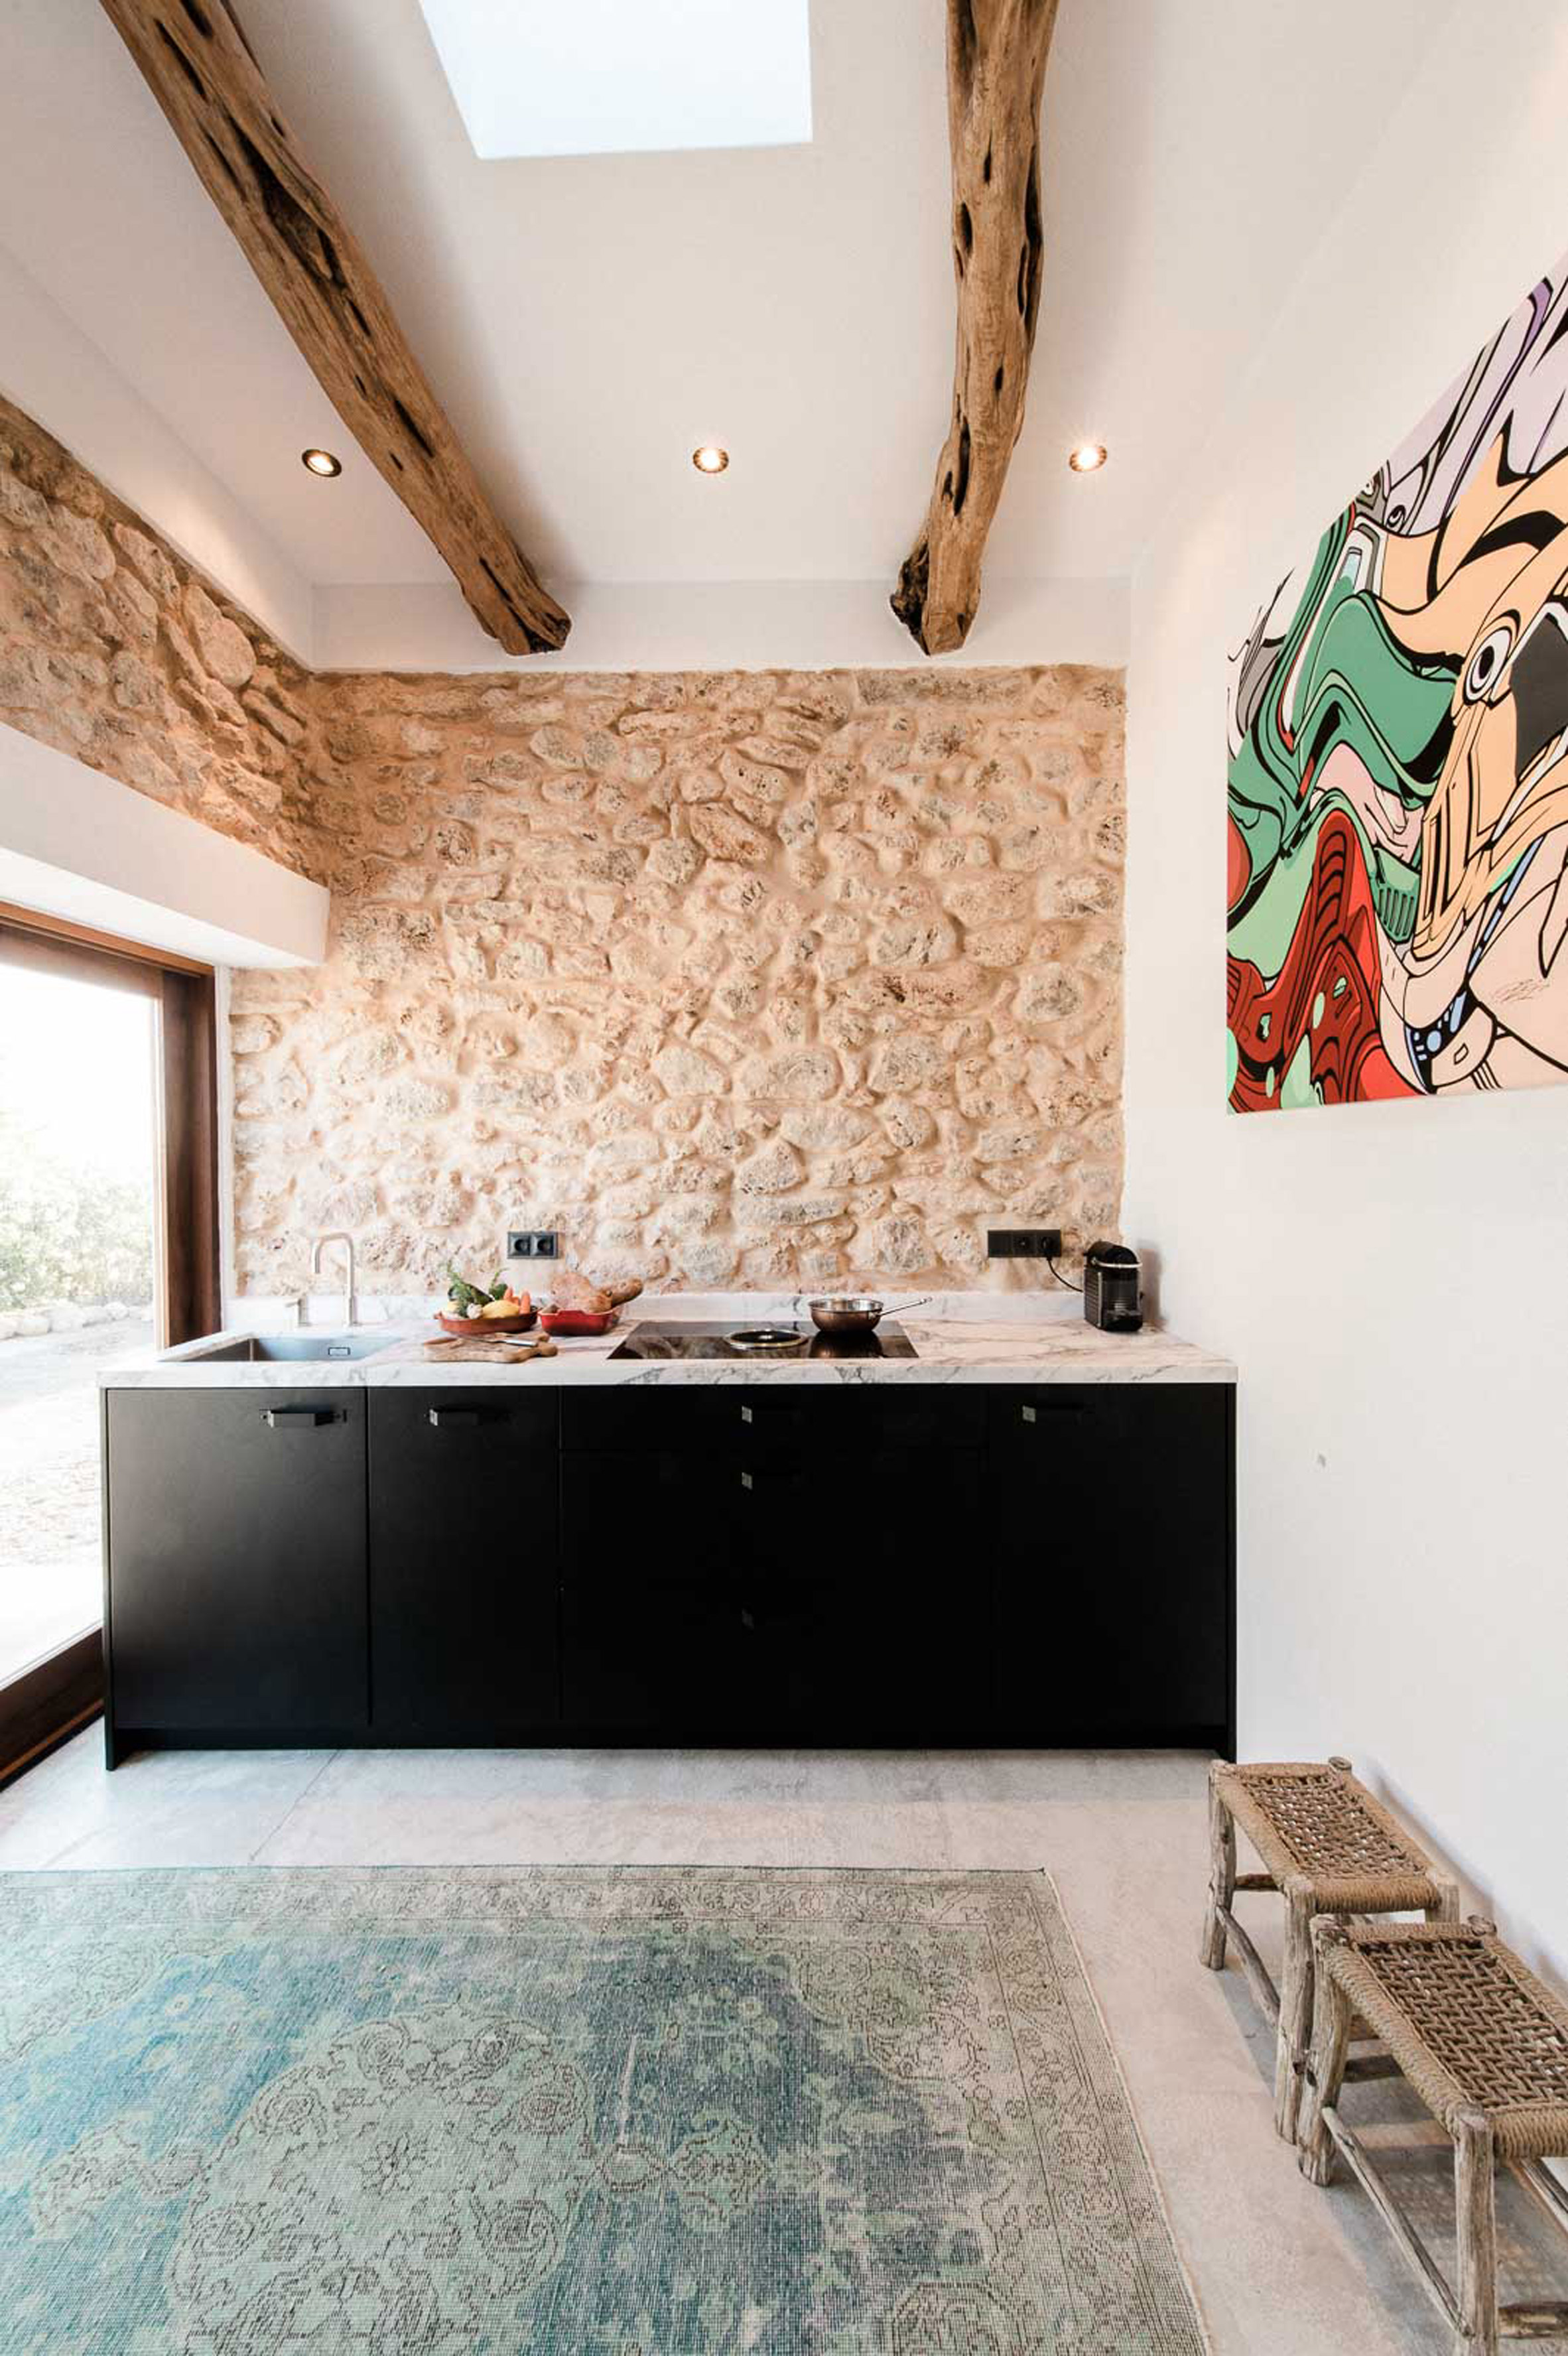 6. Transformation from stable to guesthouse in Ibiza by Standard Studio - Transformation from stable to guesthouse in Ibiza by Standard Studio